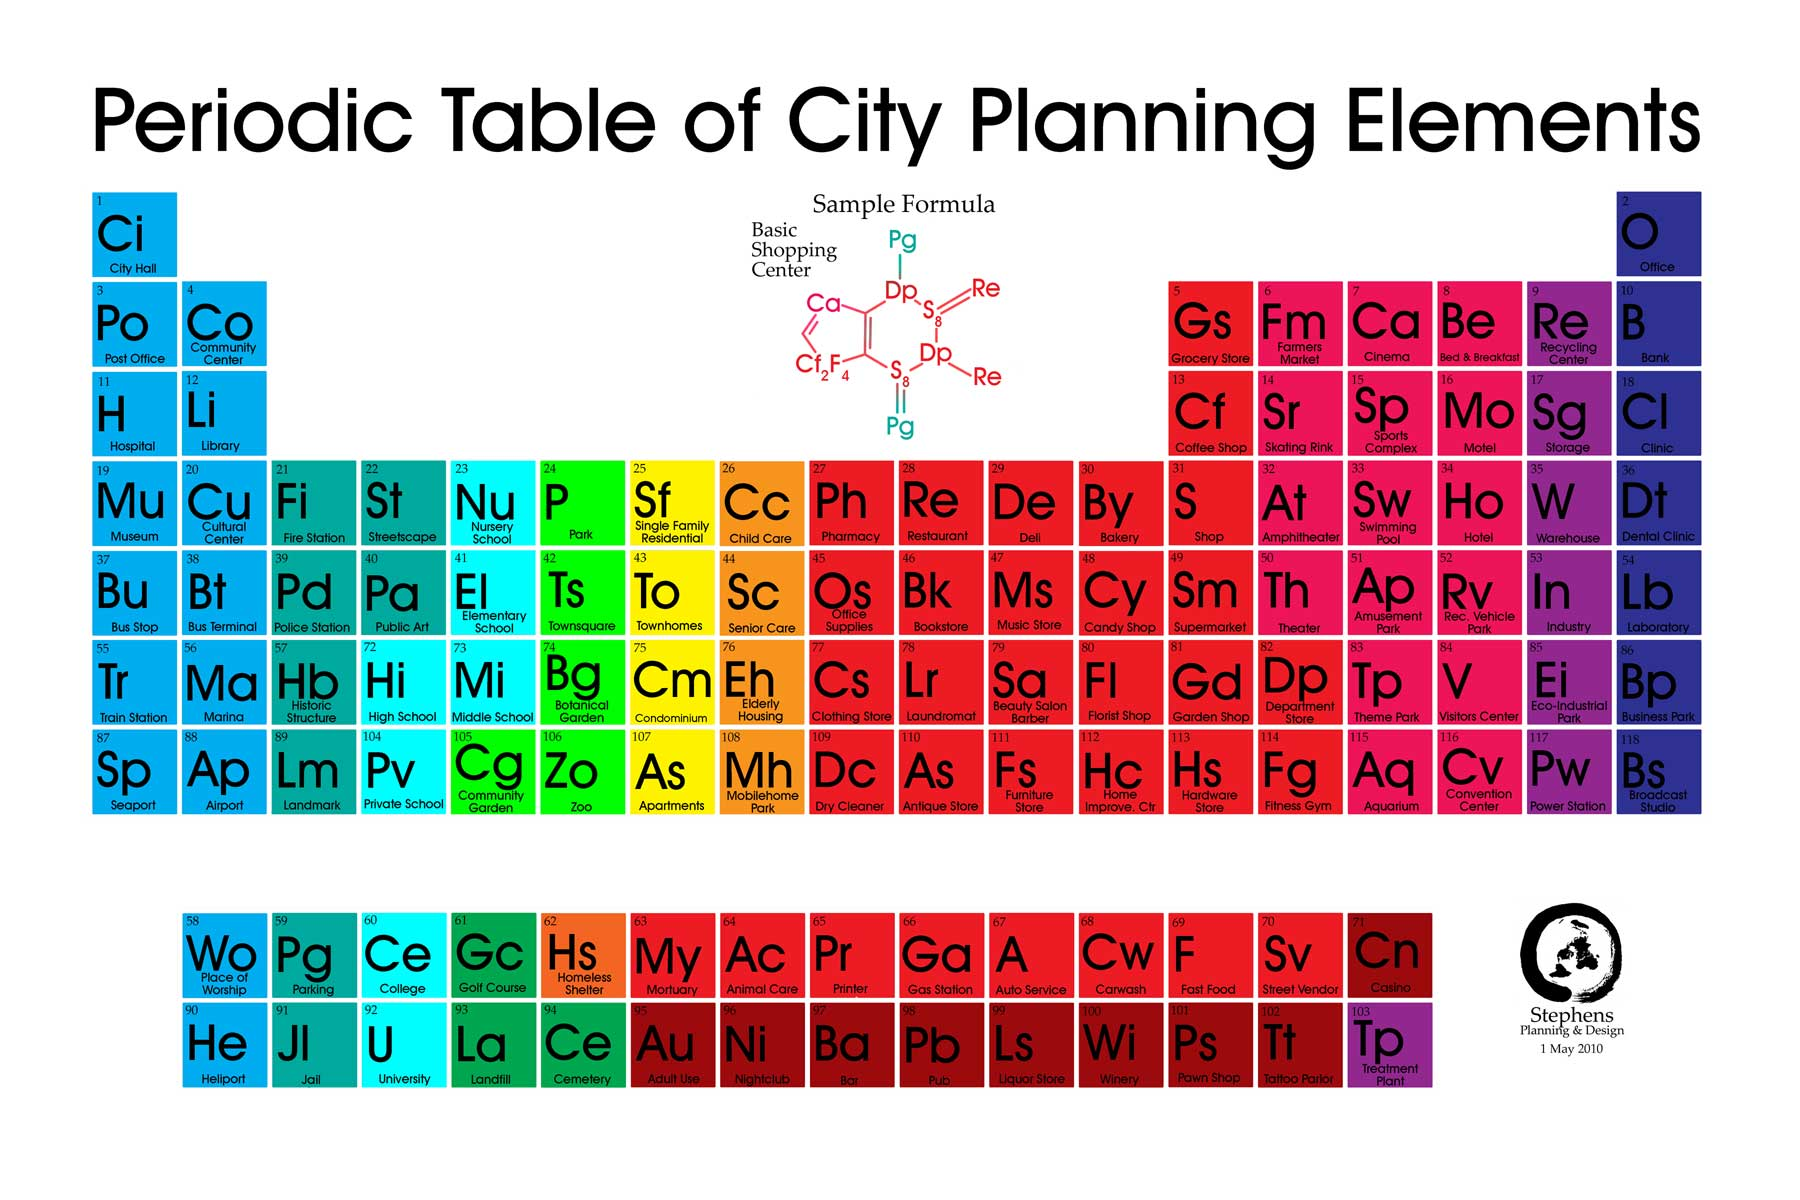 The periodic table of city planning elements features planetizen click the image to see a larger version in a new window gamestrikefo Gallery